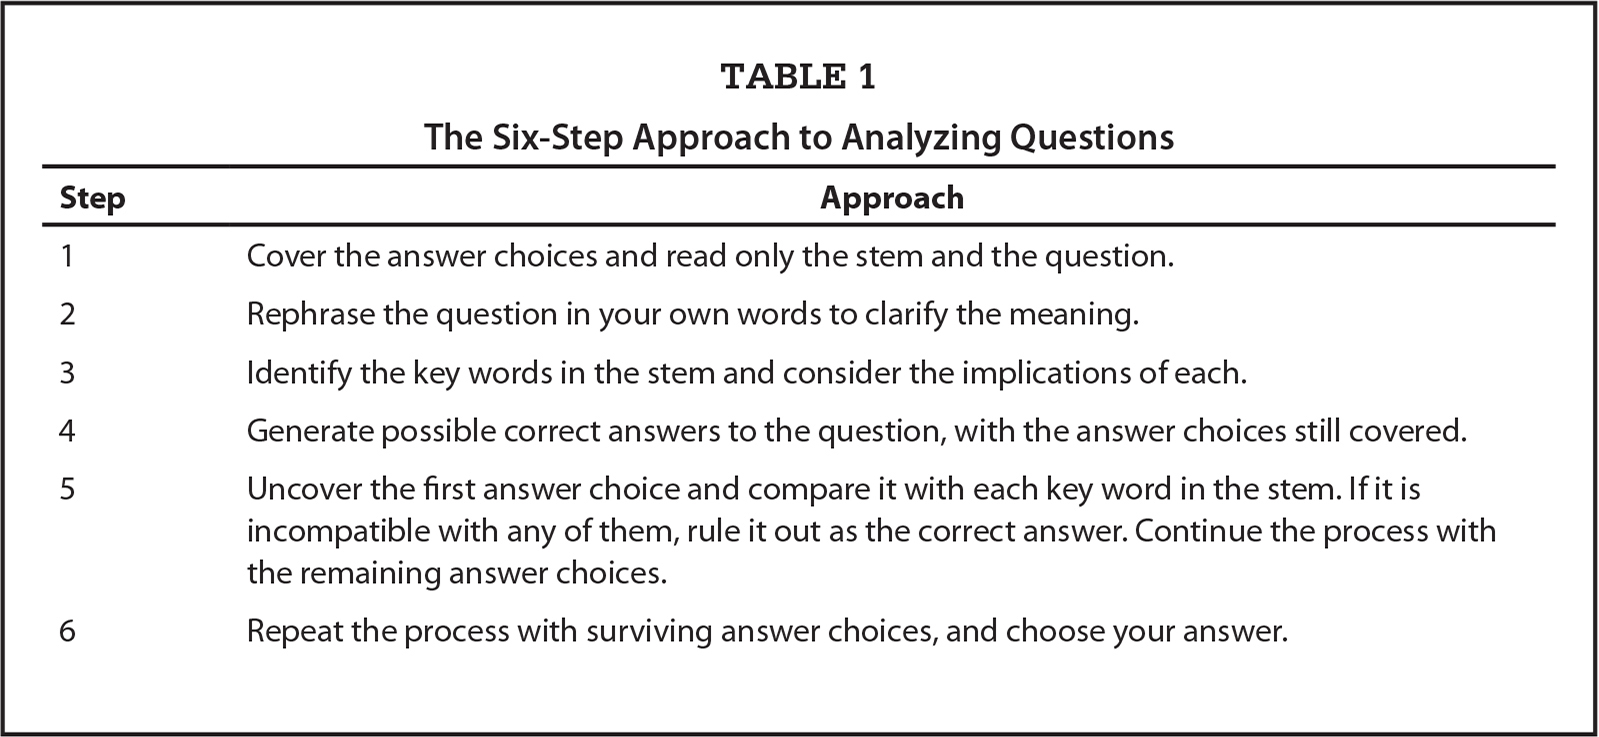 The Six-Step Approach to Analyzing Questions